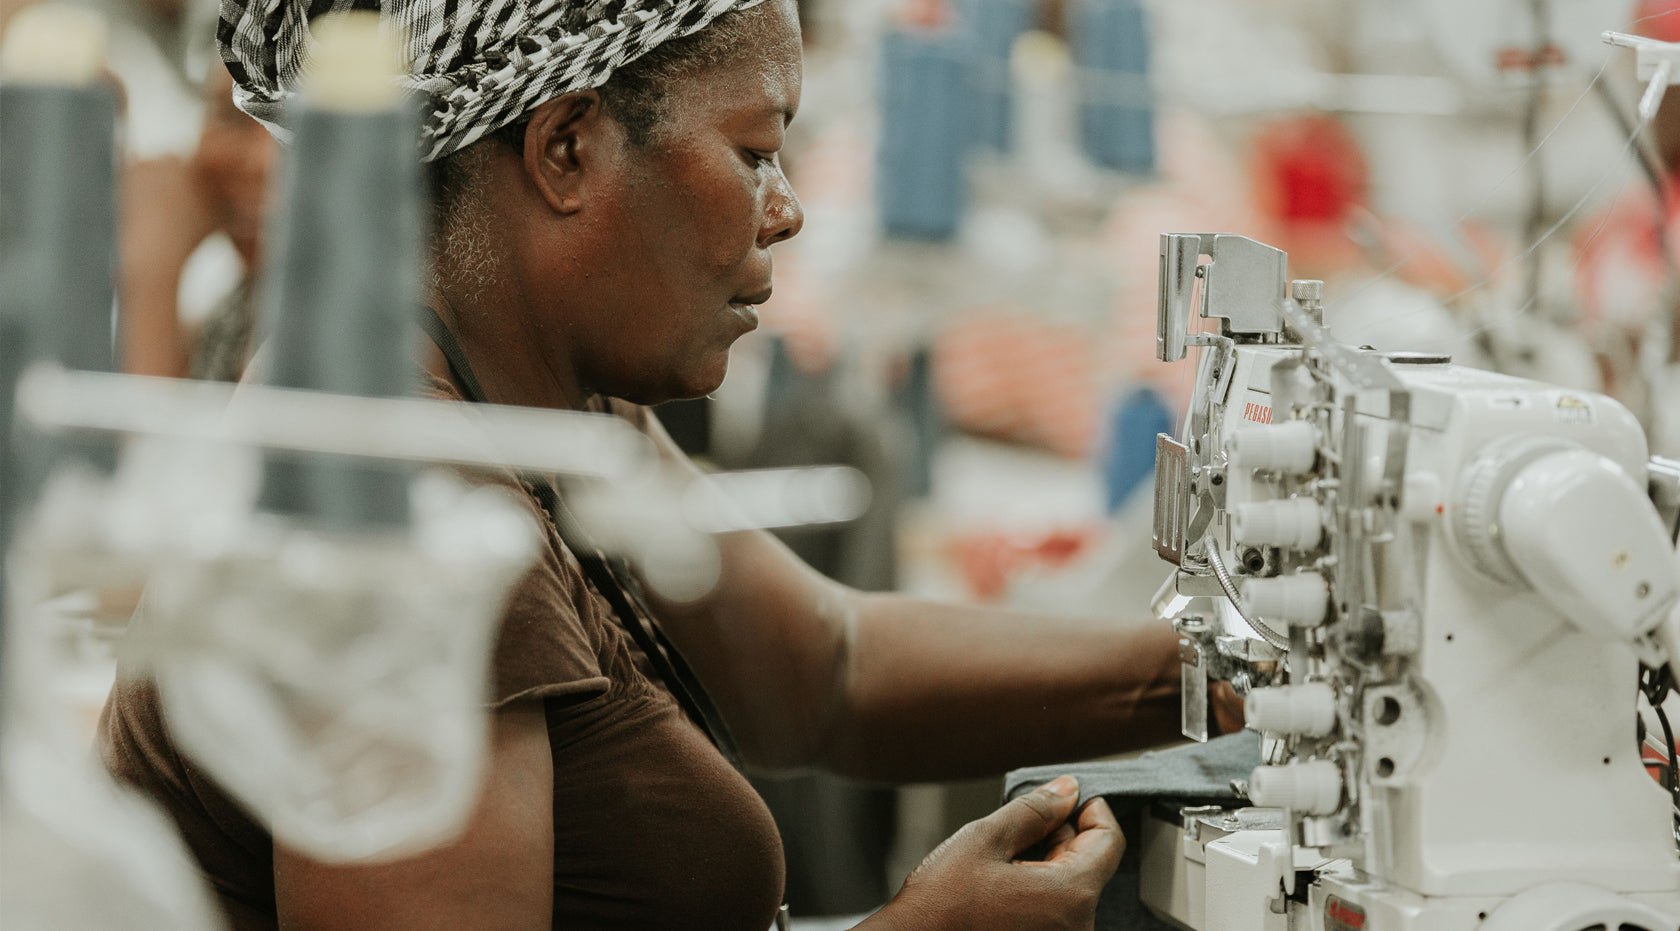 The Fashion Industry and Ethical Production